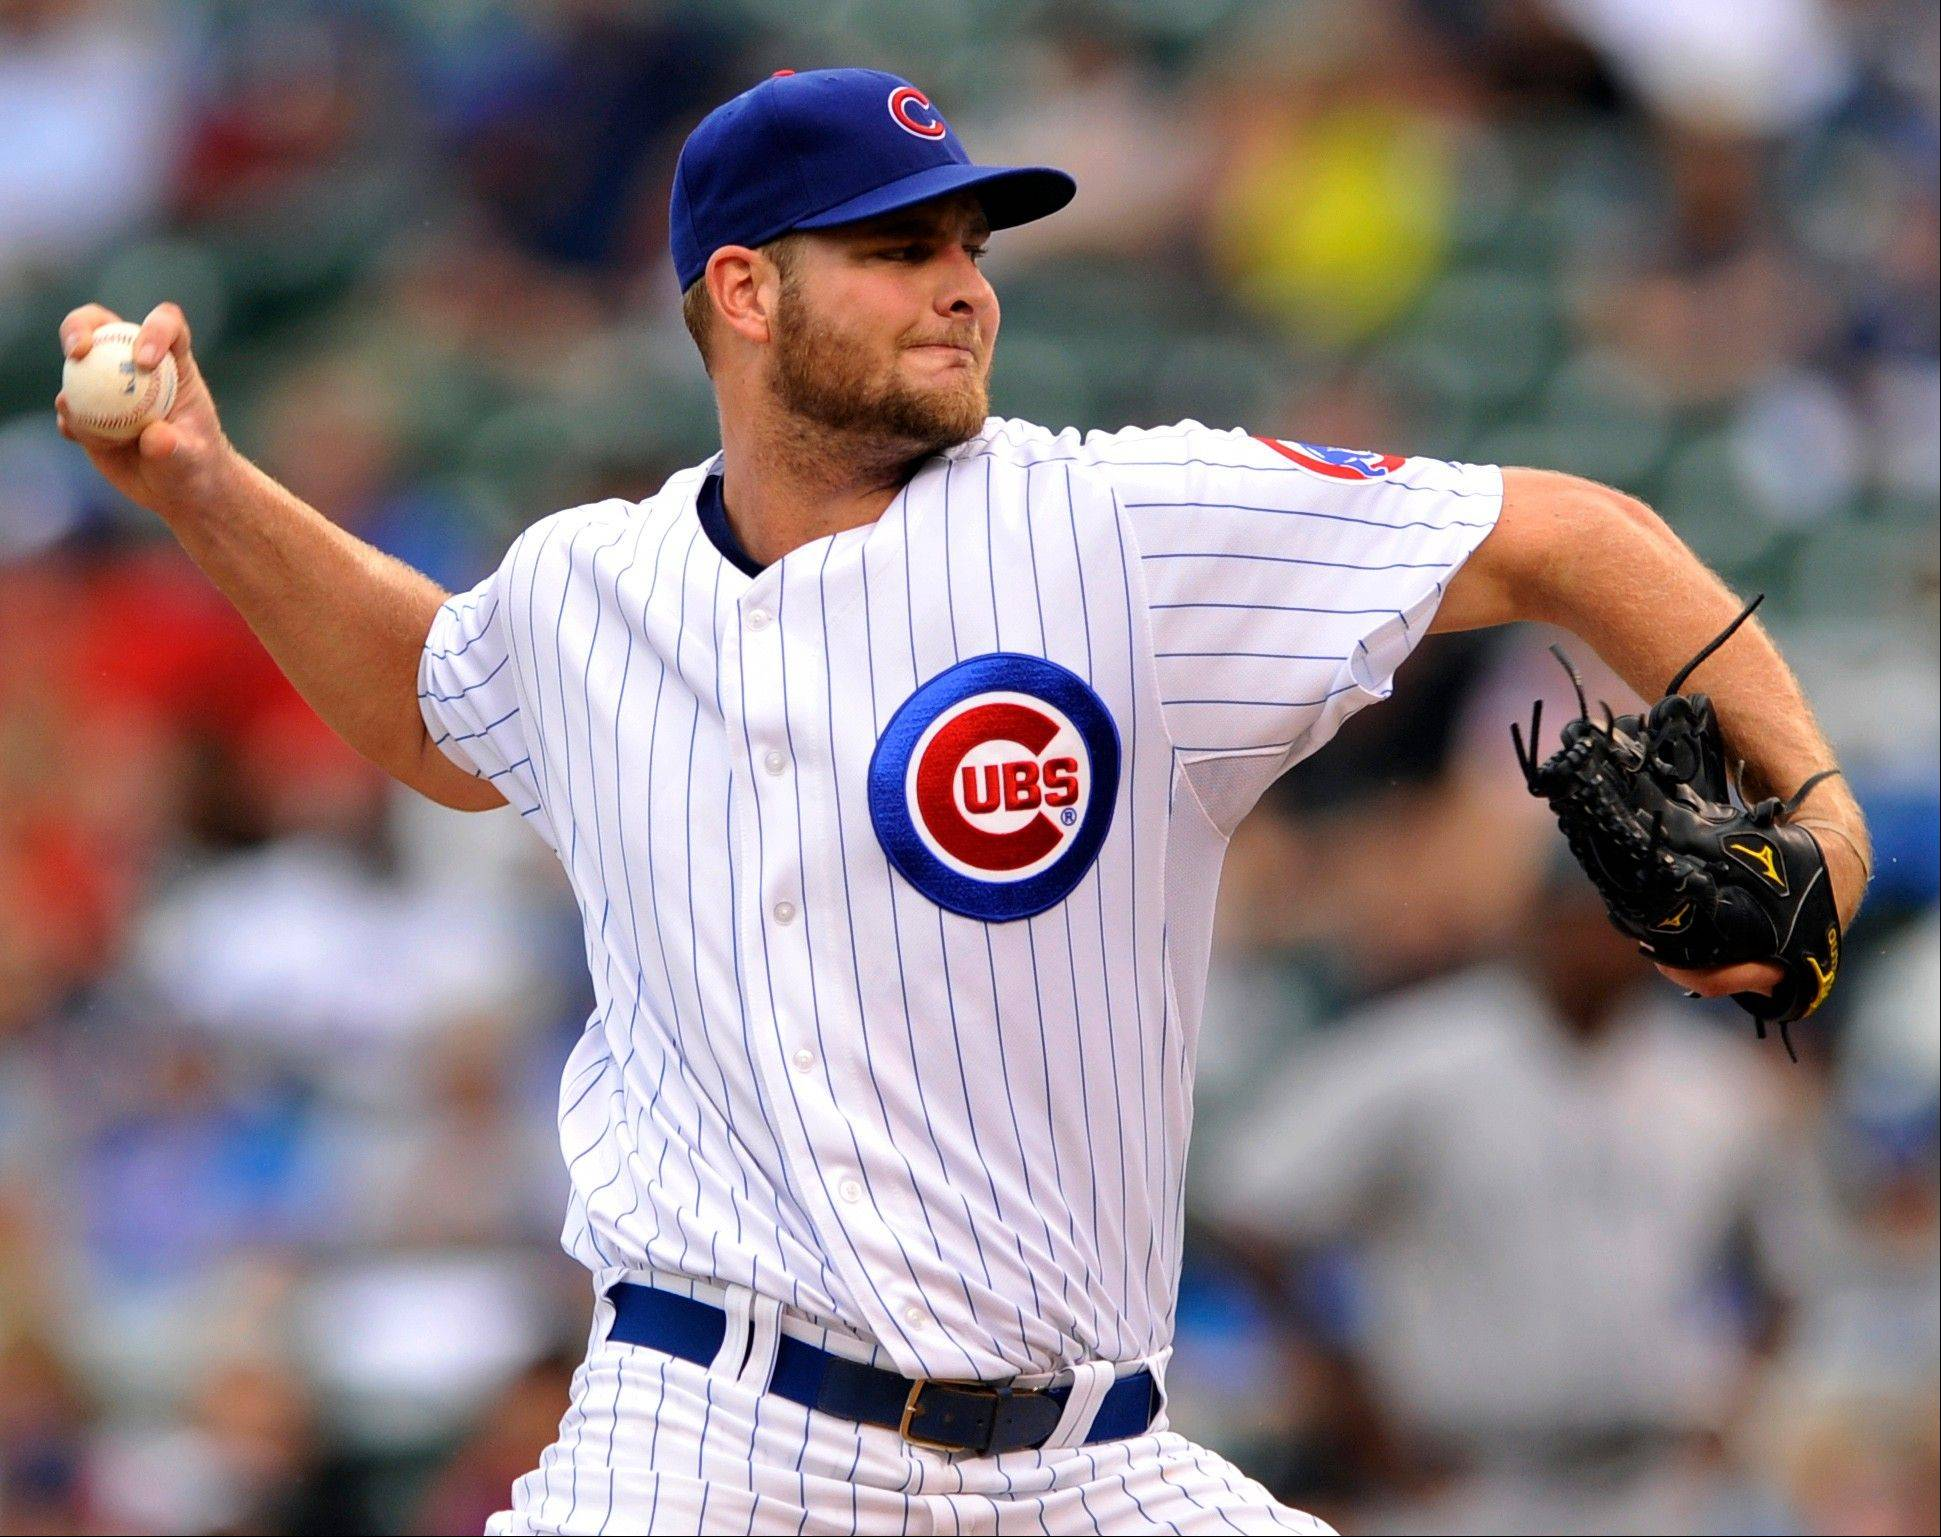 Cubs starter Chris Volstad earned his first victory Sunday since July 10, 2011, when he was a member of the Marlins. He had gone 24 starts without a win, 4 short of the all-time record.